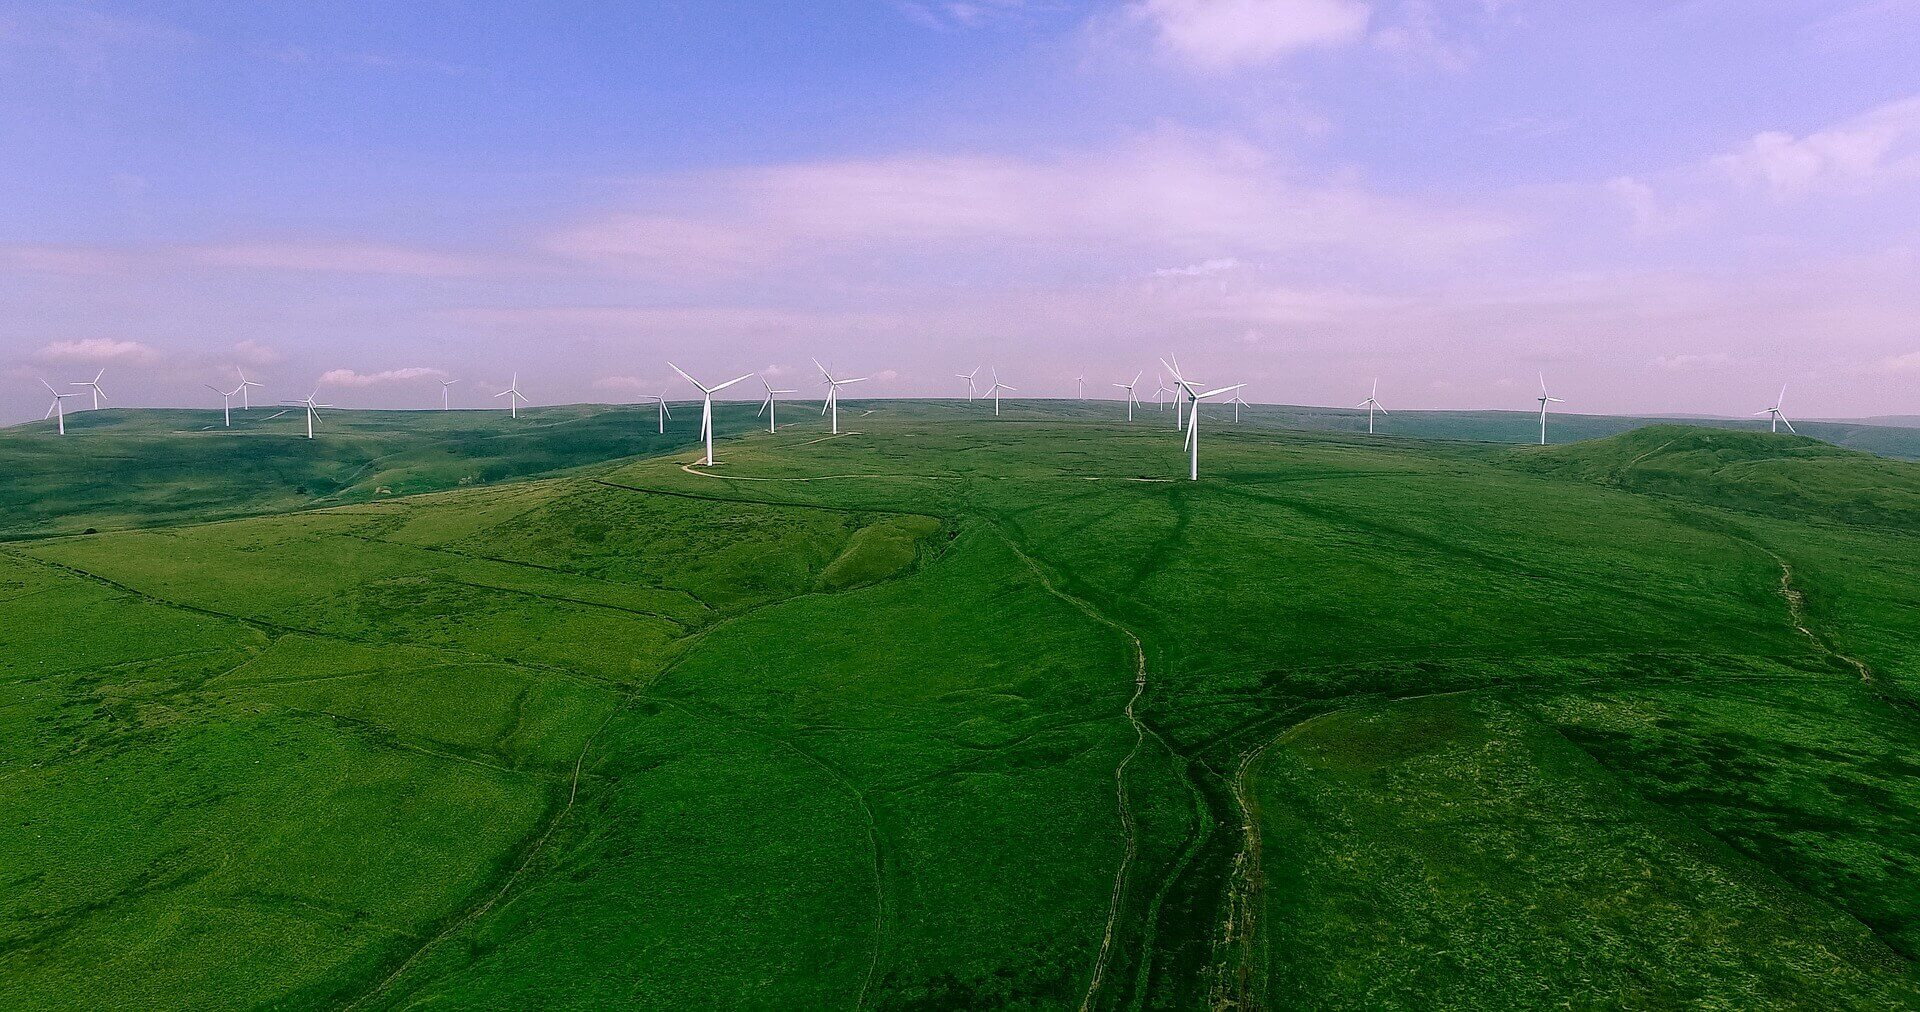 The Next Generation Of Risk Management For Renewable Energy